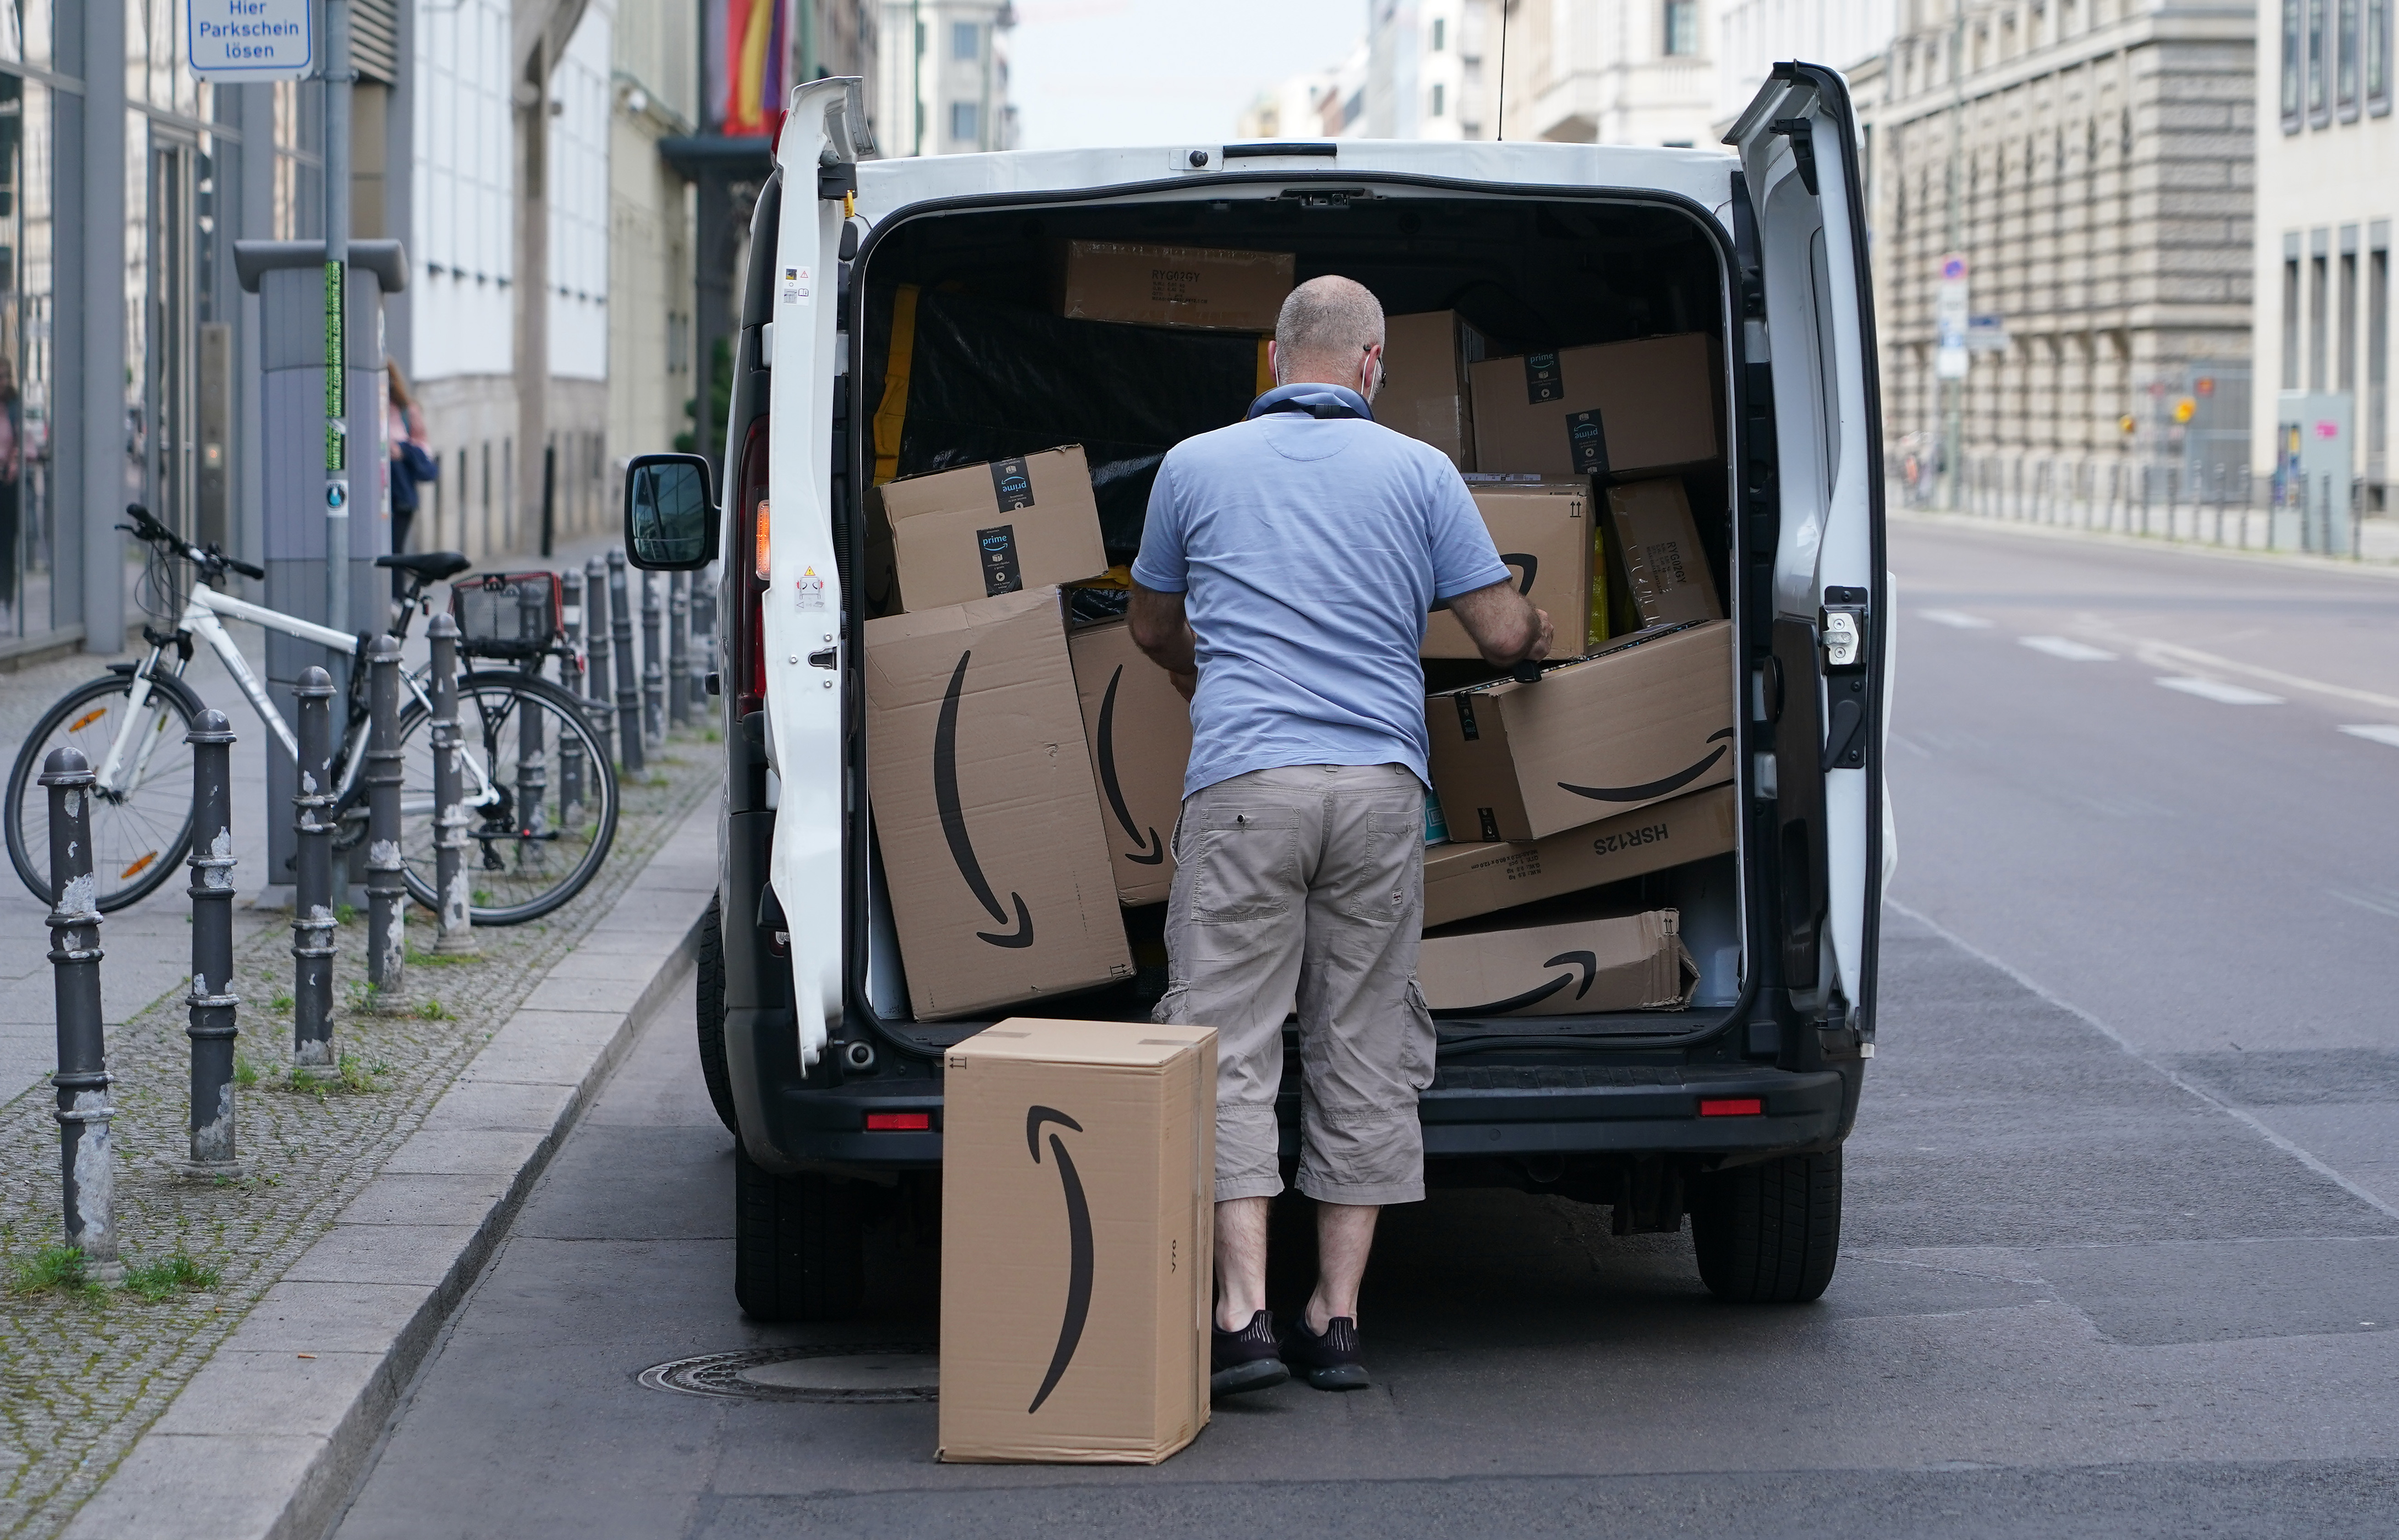 A courier unloads Amazon packages during a delivery on June 18, 2020 in Berlin, Germany. Amazon has expanded rapidly in Germany and now has at least 13 Amazon warehouses nationwide. (Photo by Sean Gallup/Getty Images)